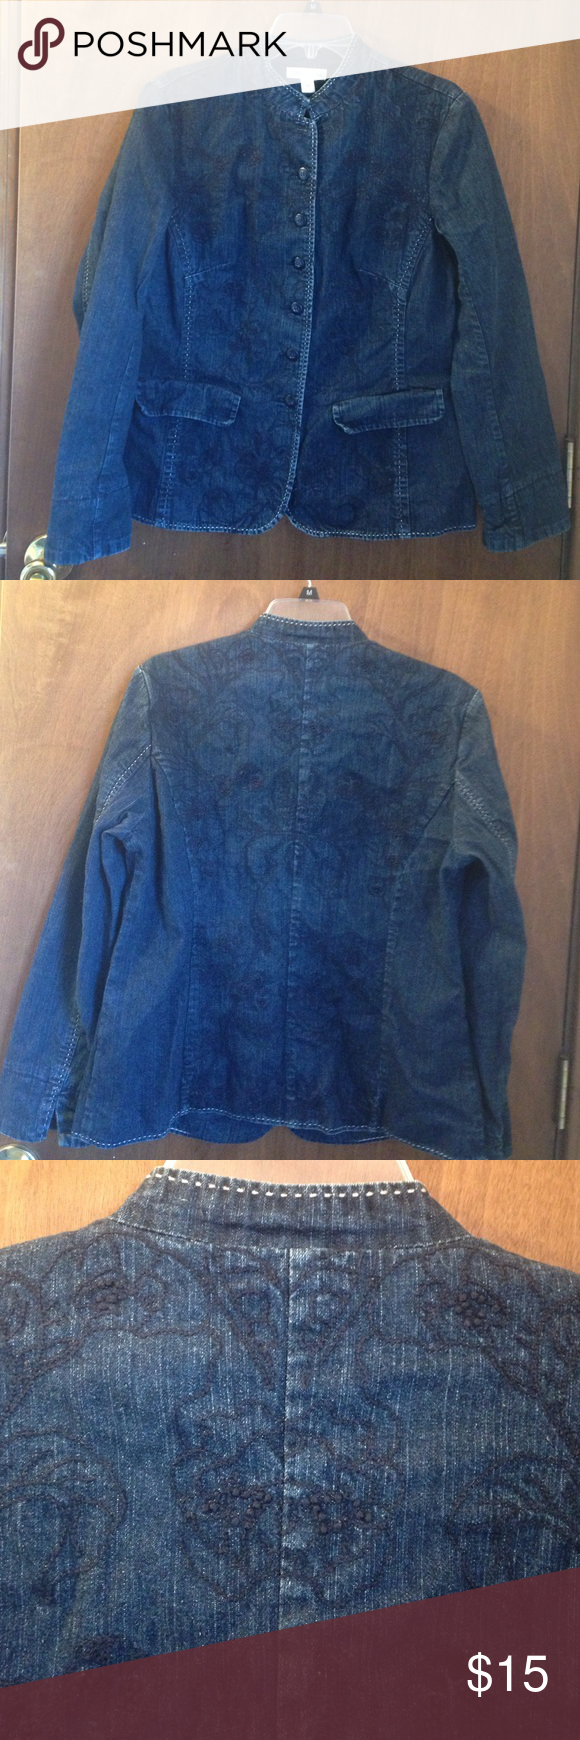 Denim jacket with embroidered detail front & back Denim jacket. Dressy embroidered detail on front and back coldwater creek brand Coldwater Creek Jackets & Coats Blazers